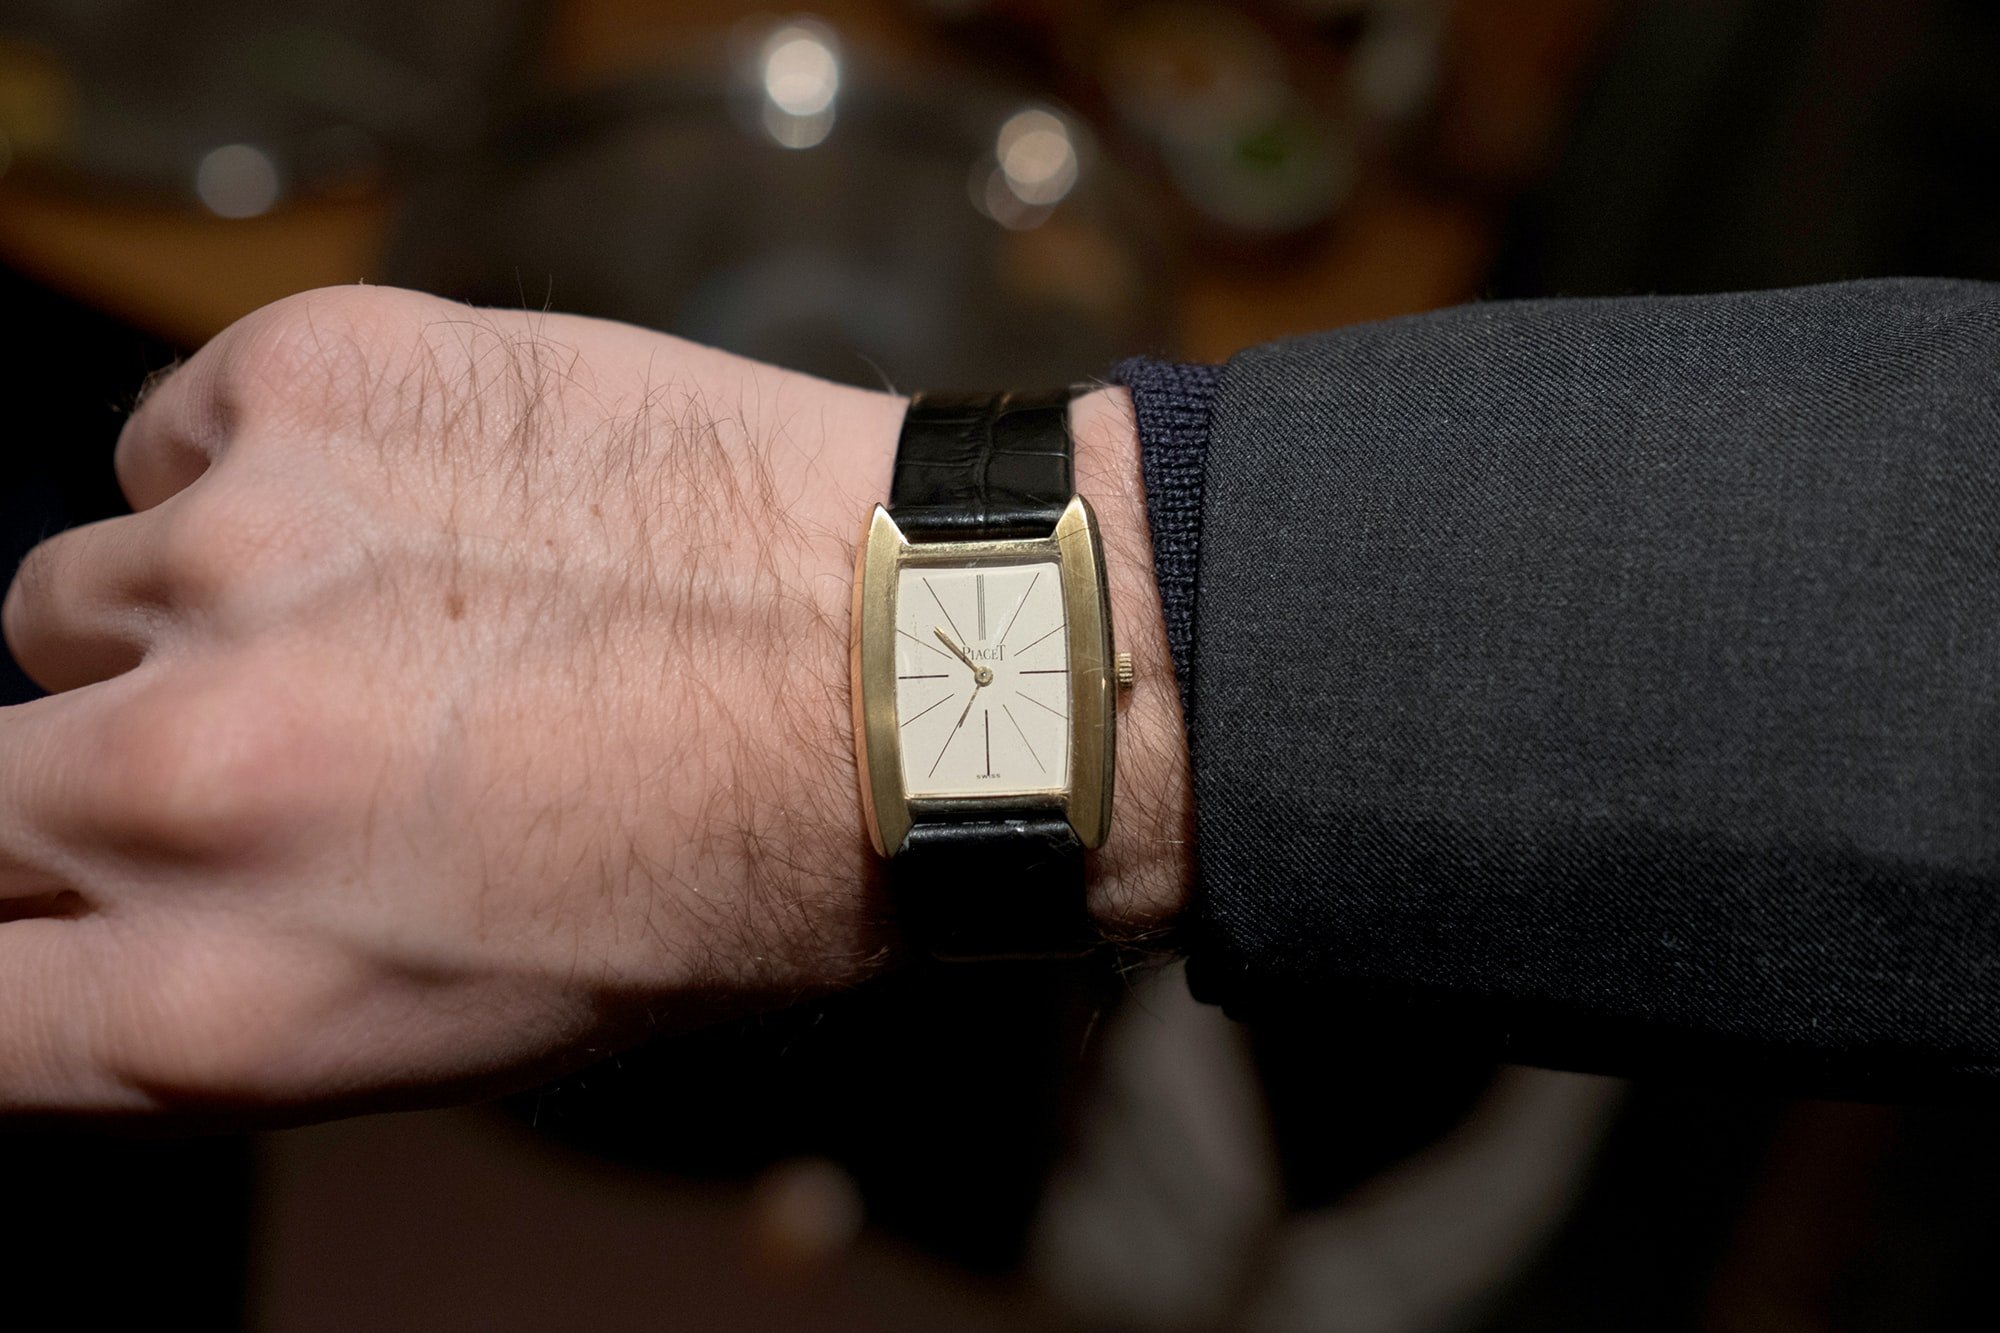 Photo Report: Watch Spotting At The HODINKEE Meet-Up In London (Plus Our Holiday 2016 Pop-Up At Harrods) Photo Report: Watch Spotting At The HODINKEE Meet-Up In London (Plus Our Holiday 2016 Pop-Up At Harrods) Hodinkee event 29 nov 2016 26